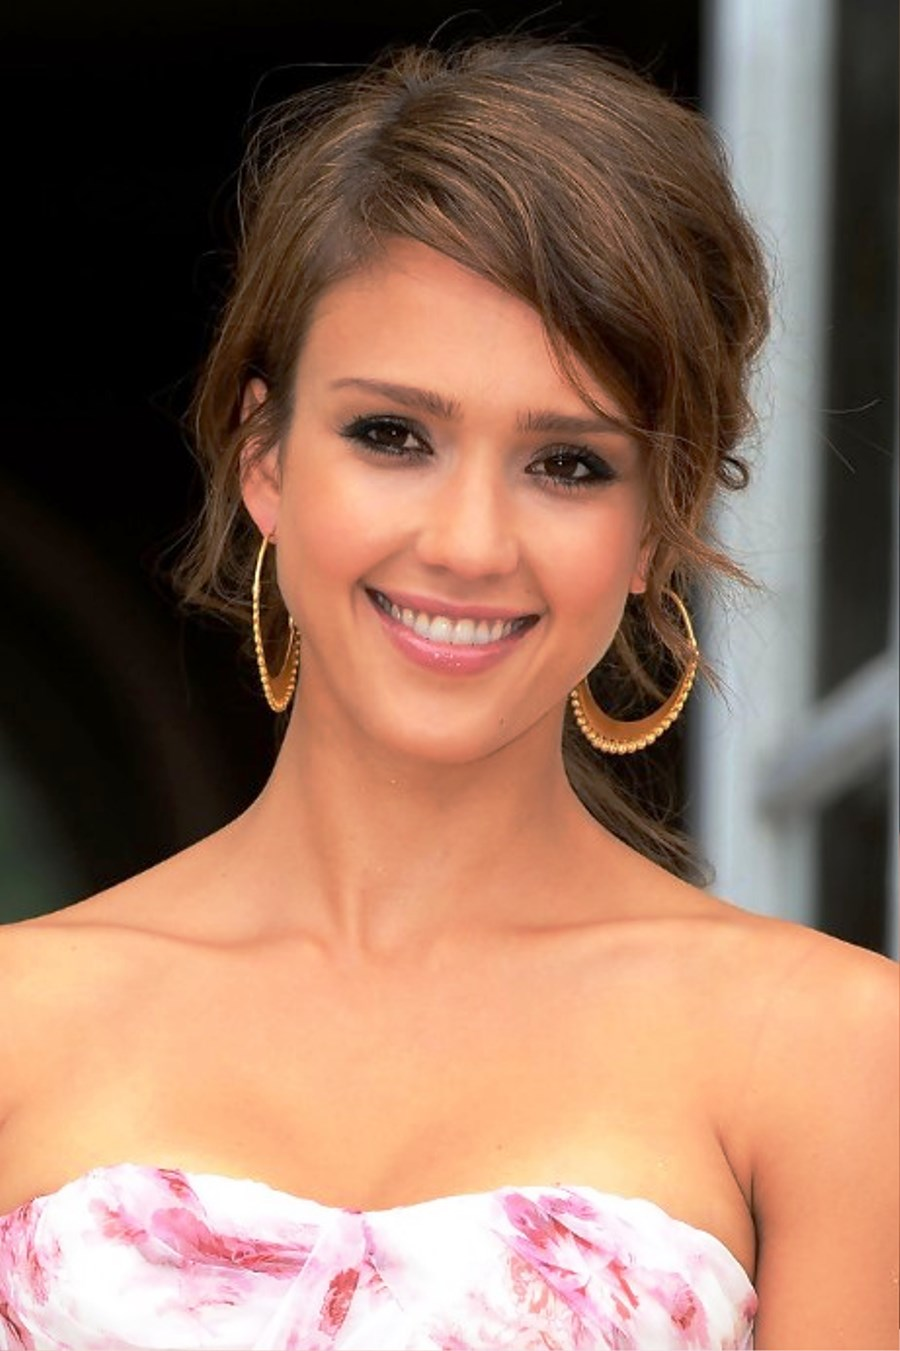 Pictures of jessica alba cute soft tousled updo hairstyle jessica alba cute soft tousled updo hairstyle pmusecretfo Image collections